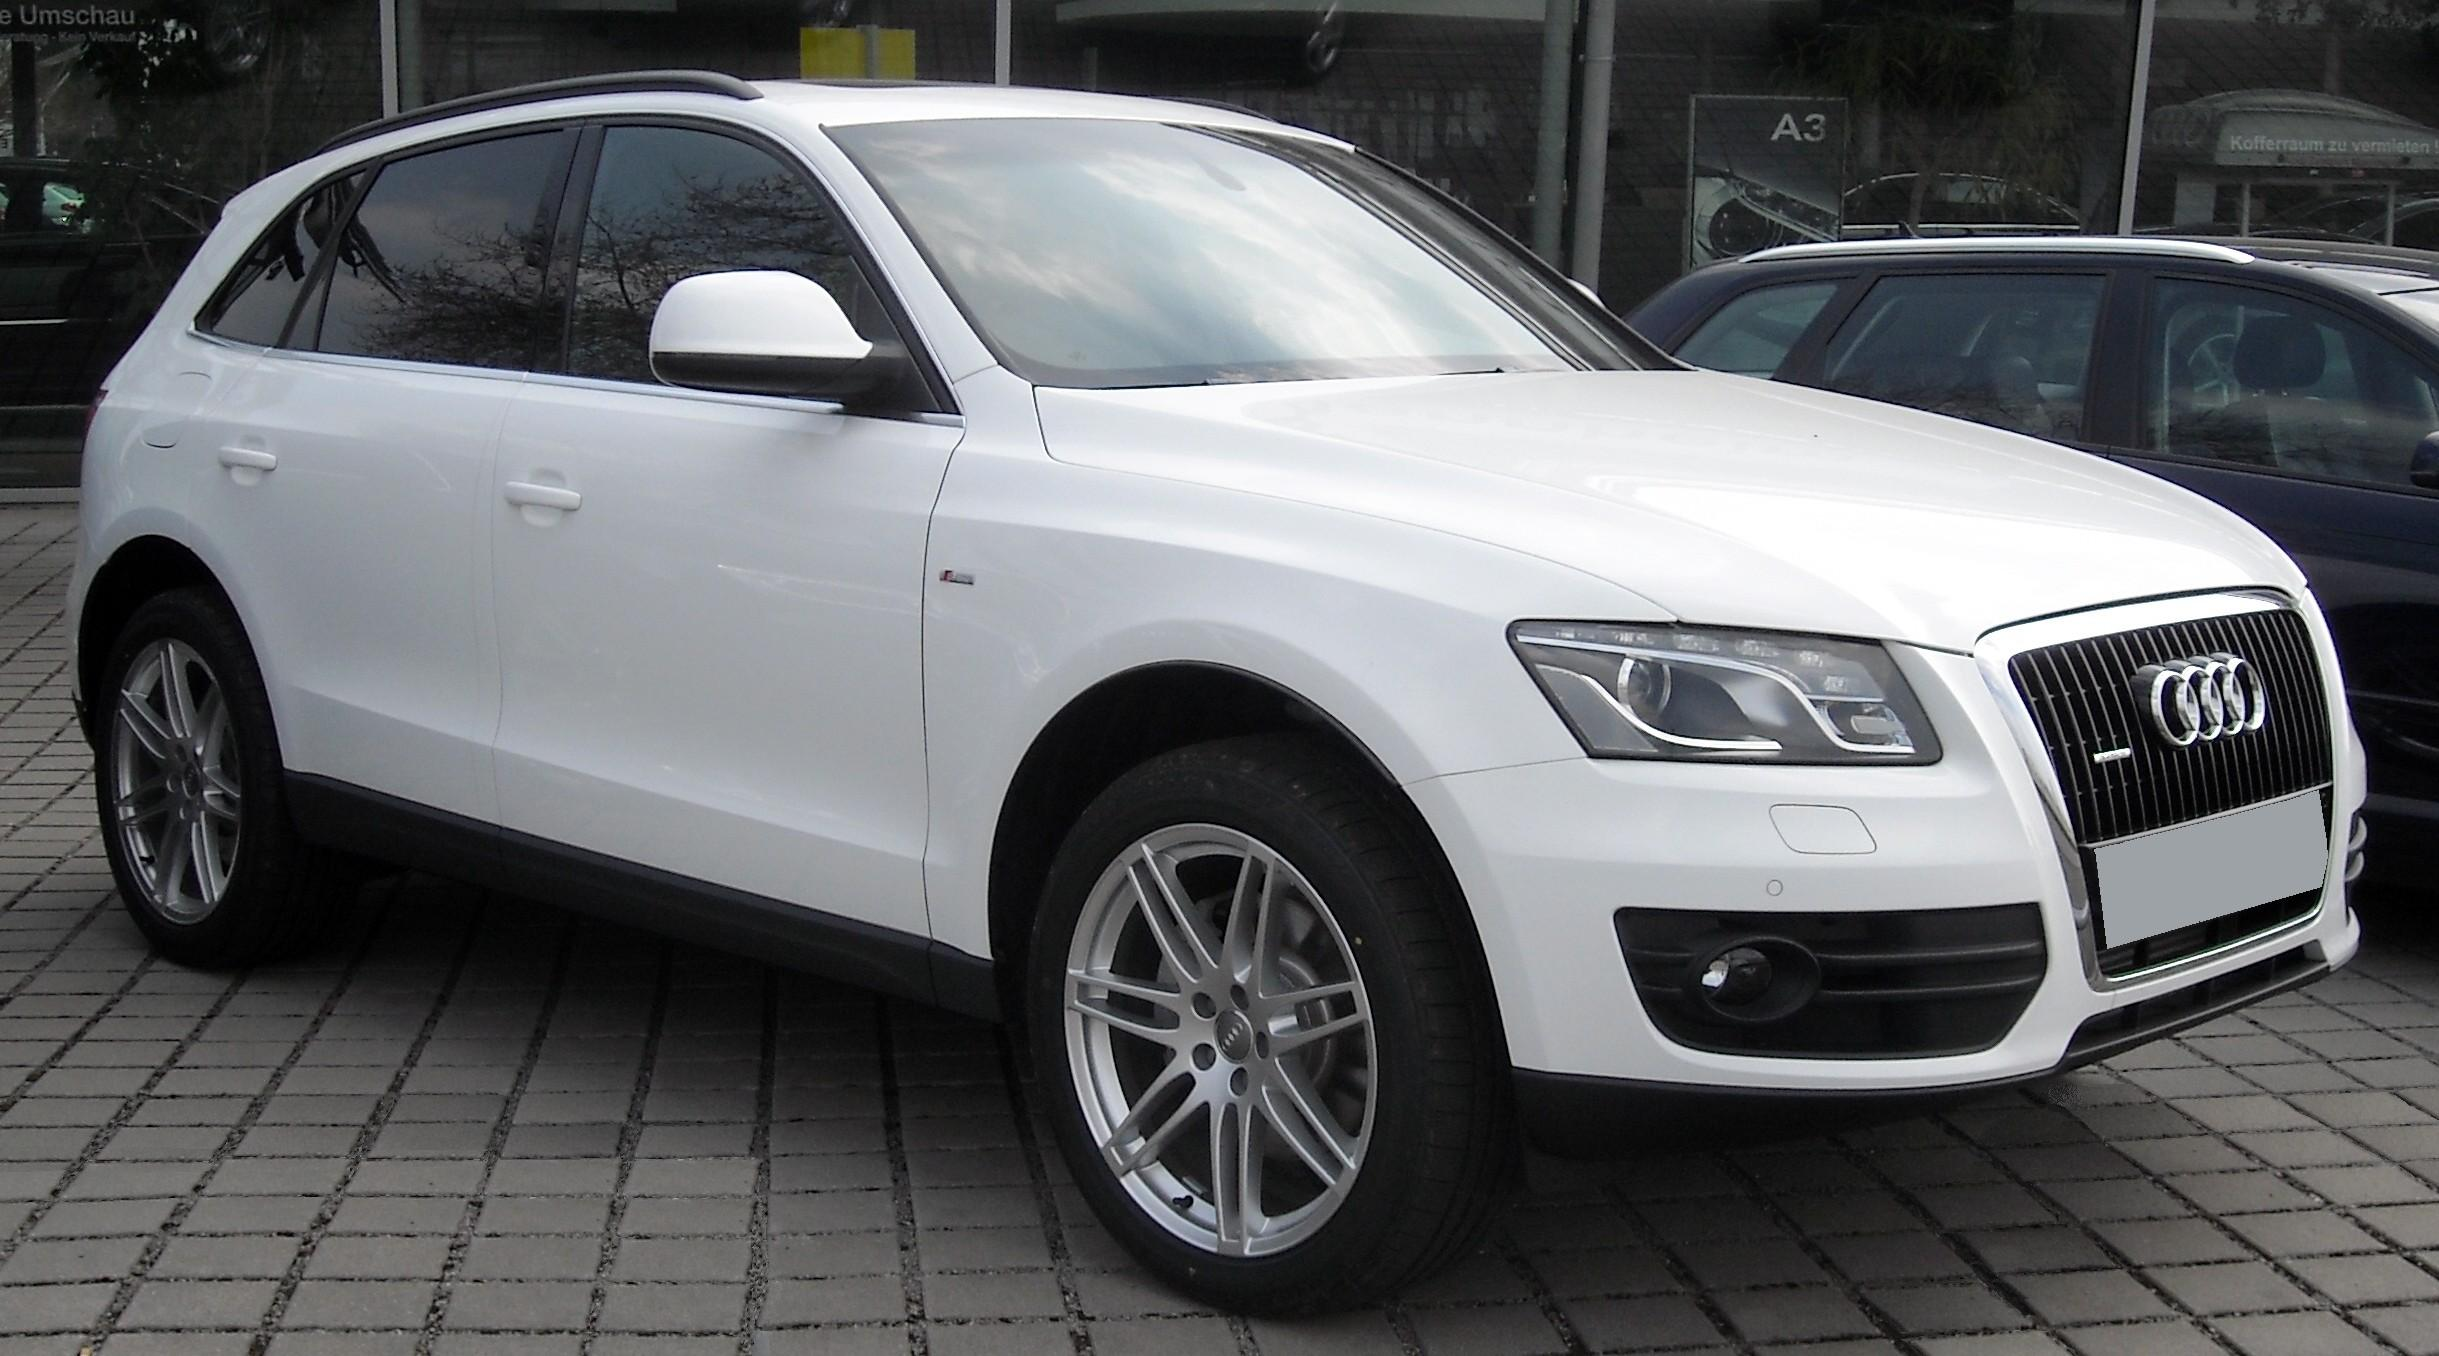 File:Audi Q5 front 20090404.jpg - Wikipedia, the free encyclopedia